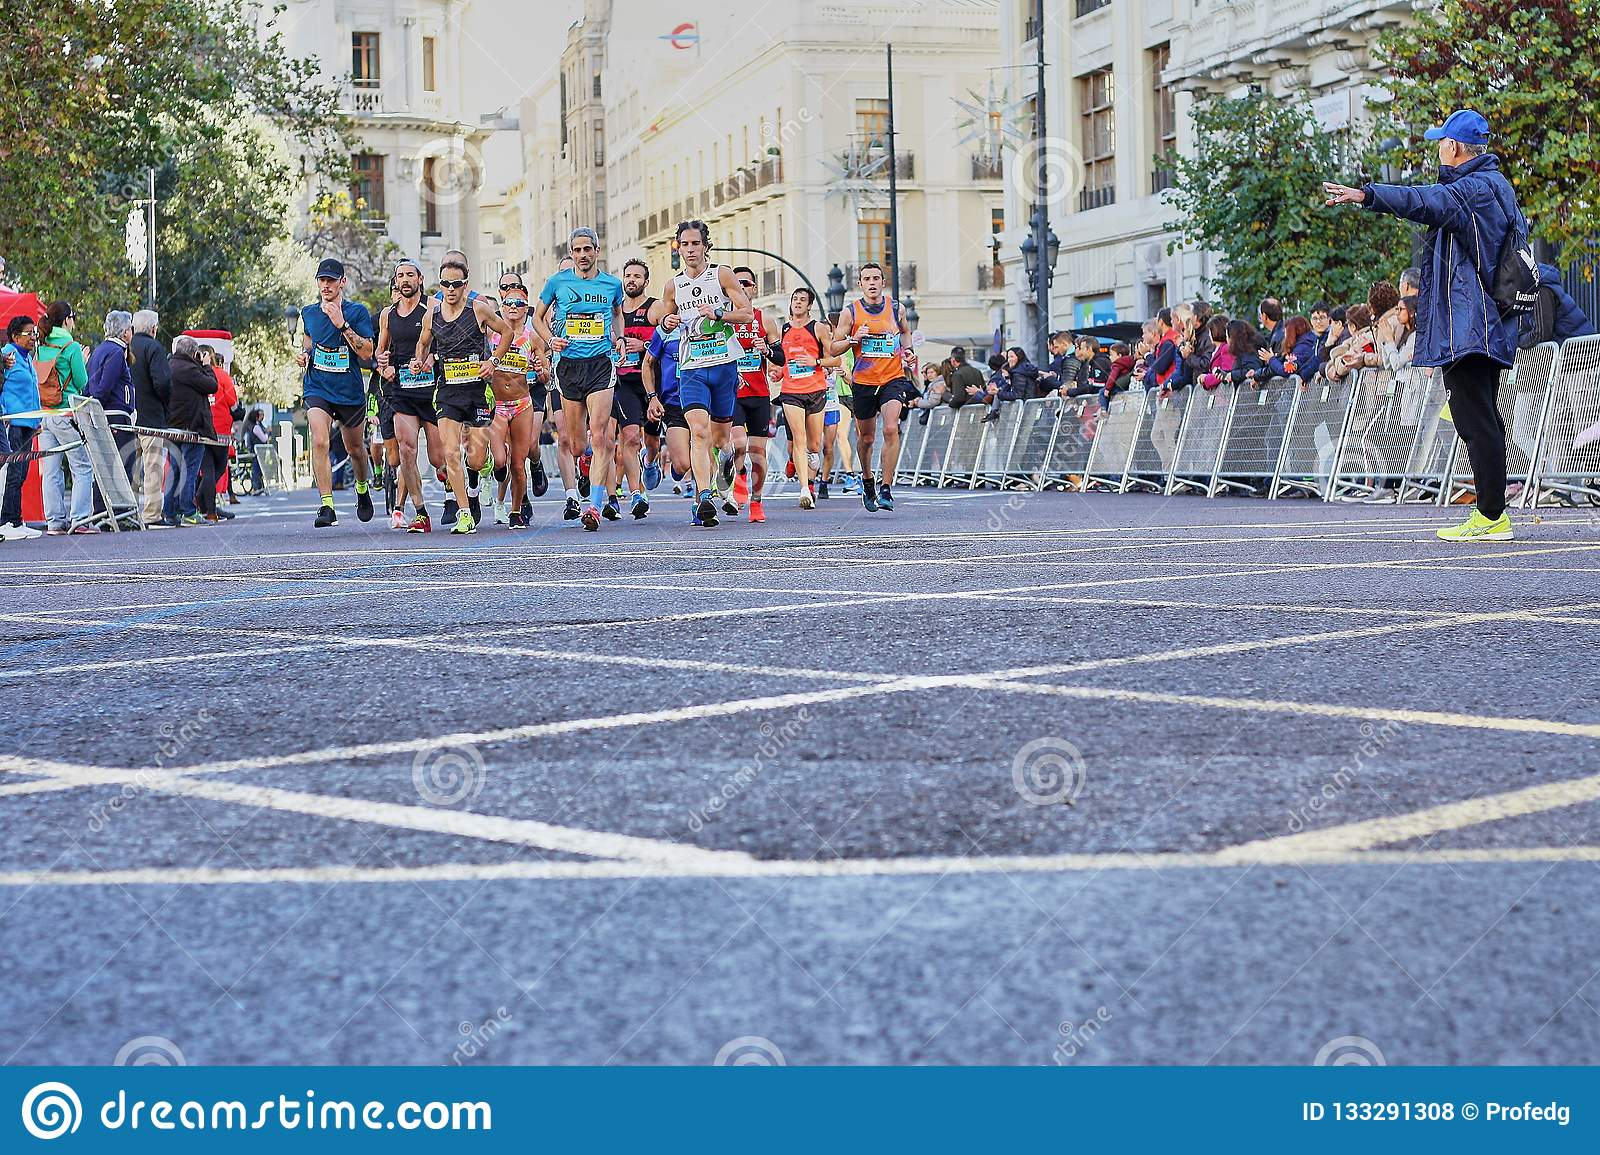 VALENCIA, SPAIN - DECEMBER 02: Runners compete in the XXXVIII Valencia Marathon on December 18, 2018 in Valencia, Spain